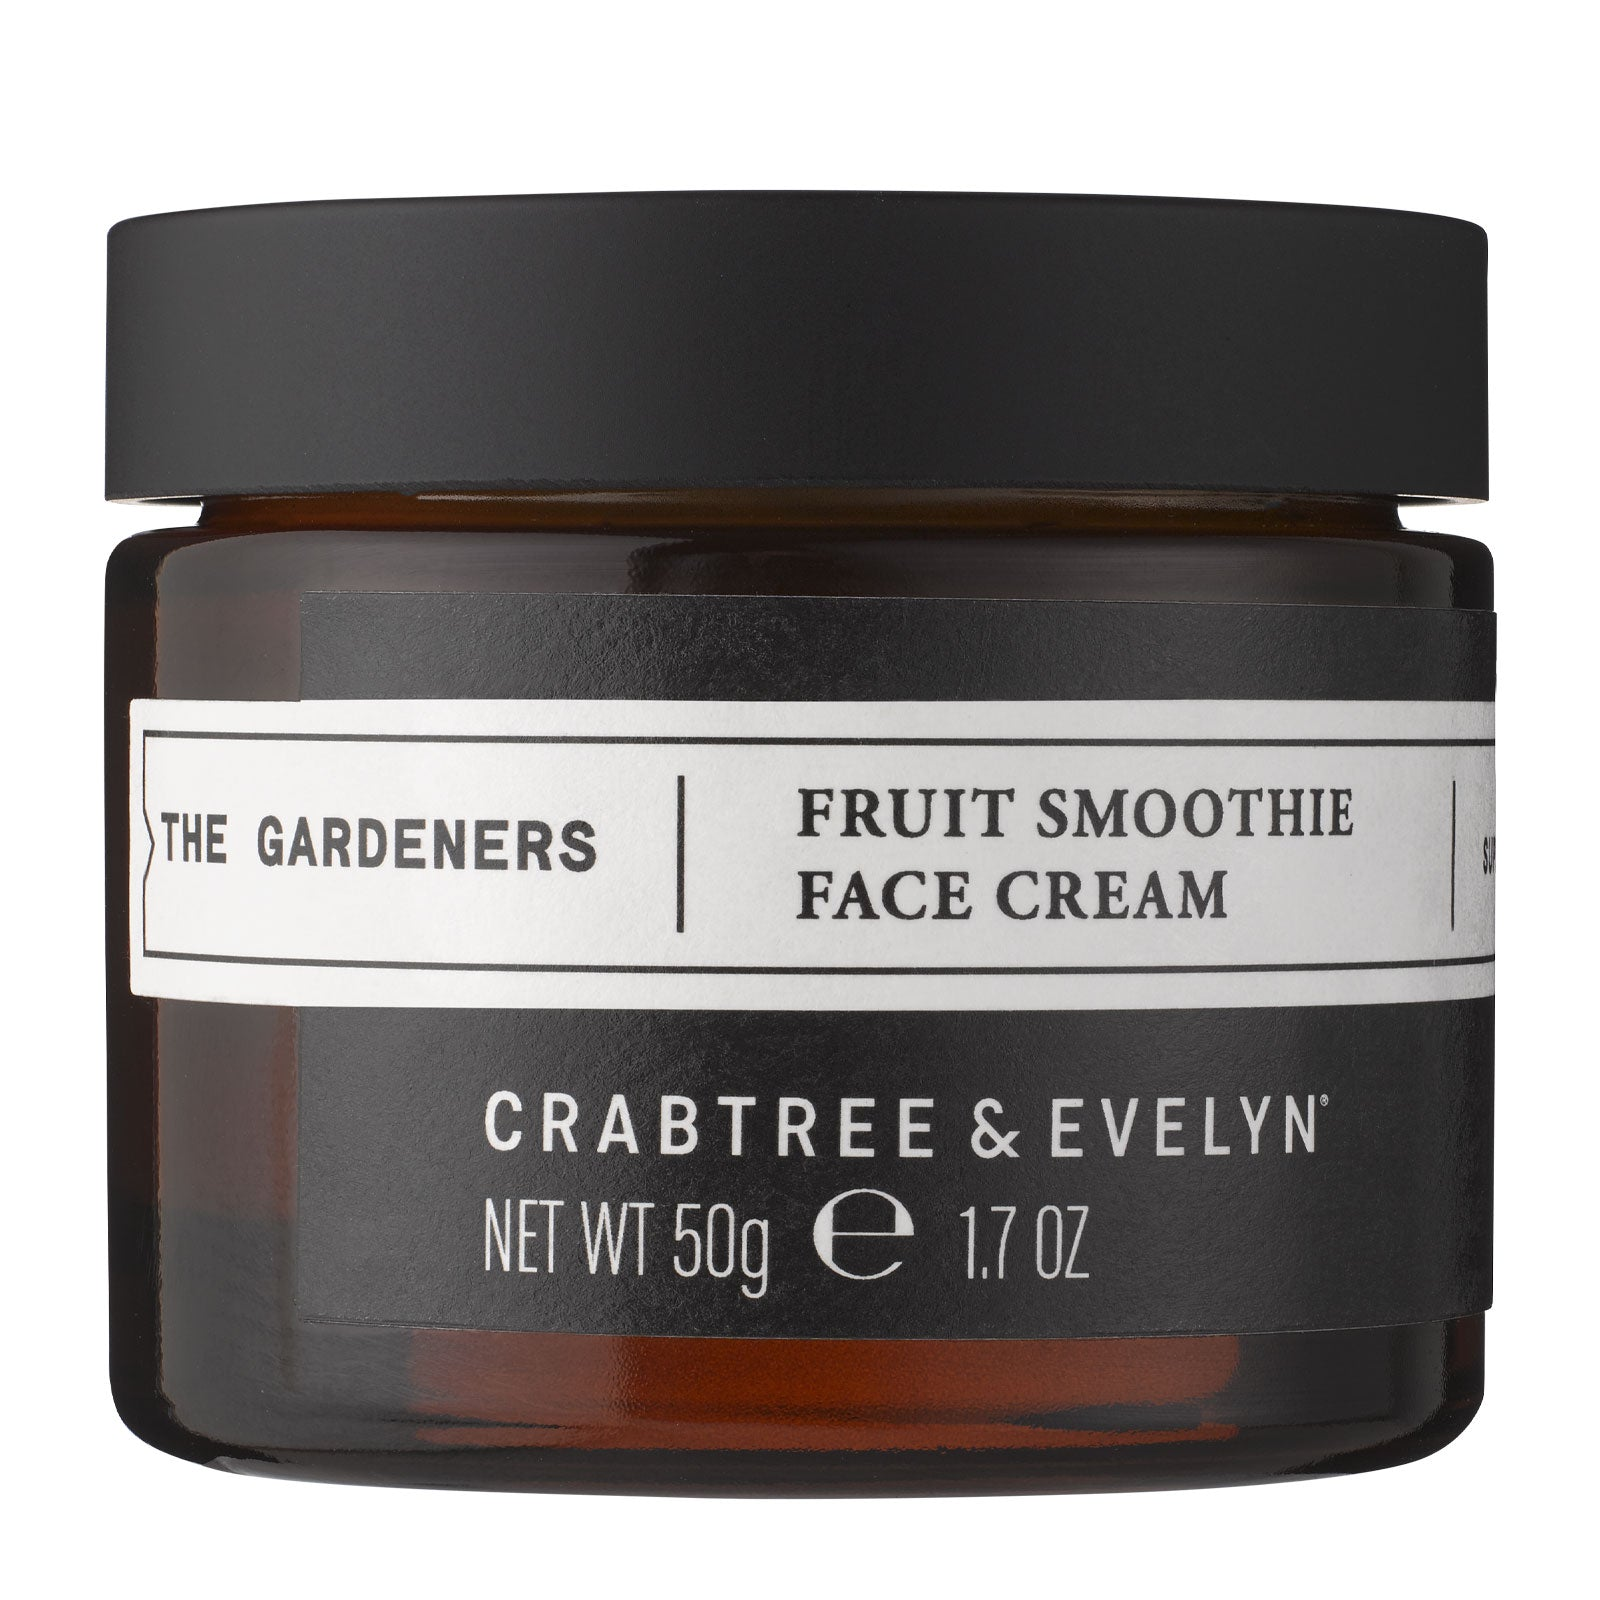 CRABTREE & EVELYN The Gardeners Fruit Smoothie Face Cream 50ml